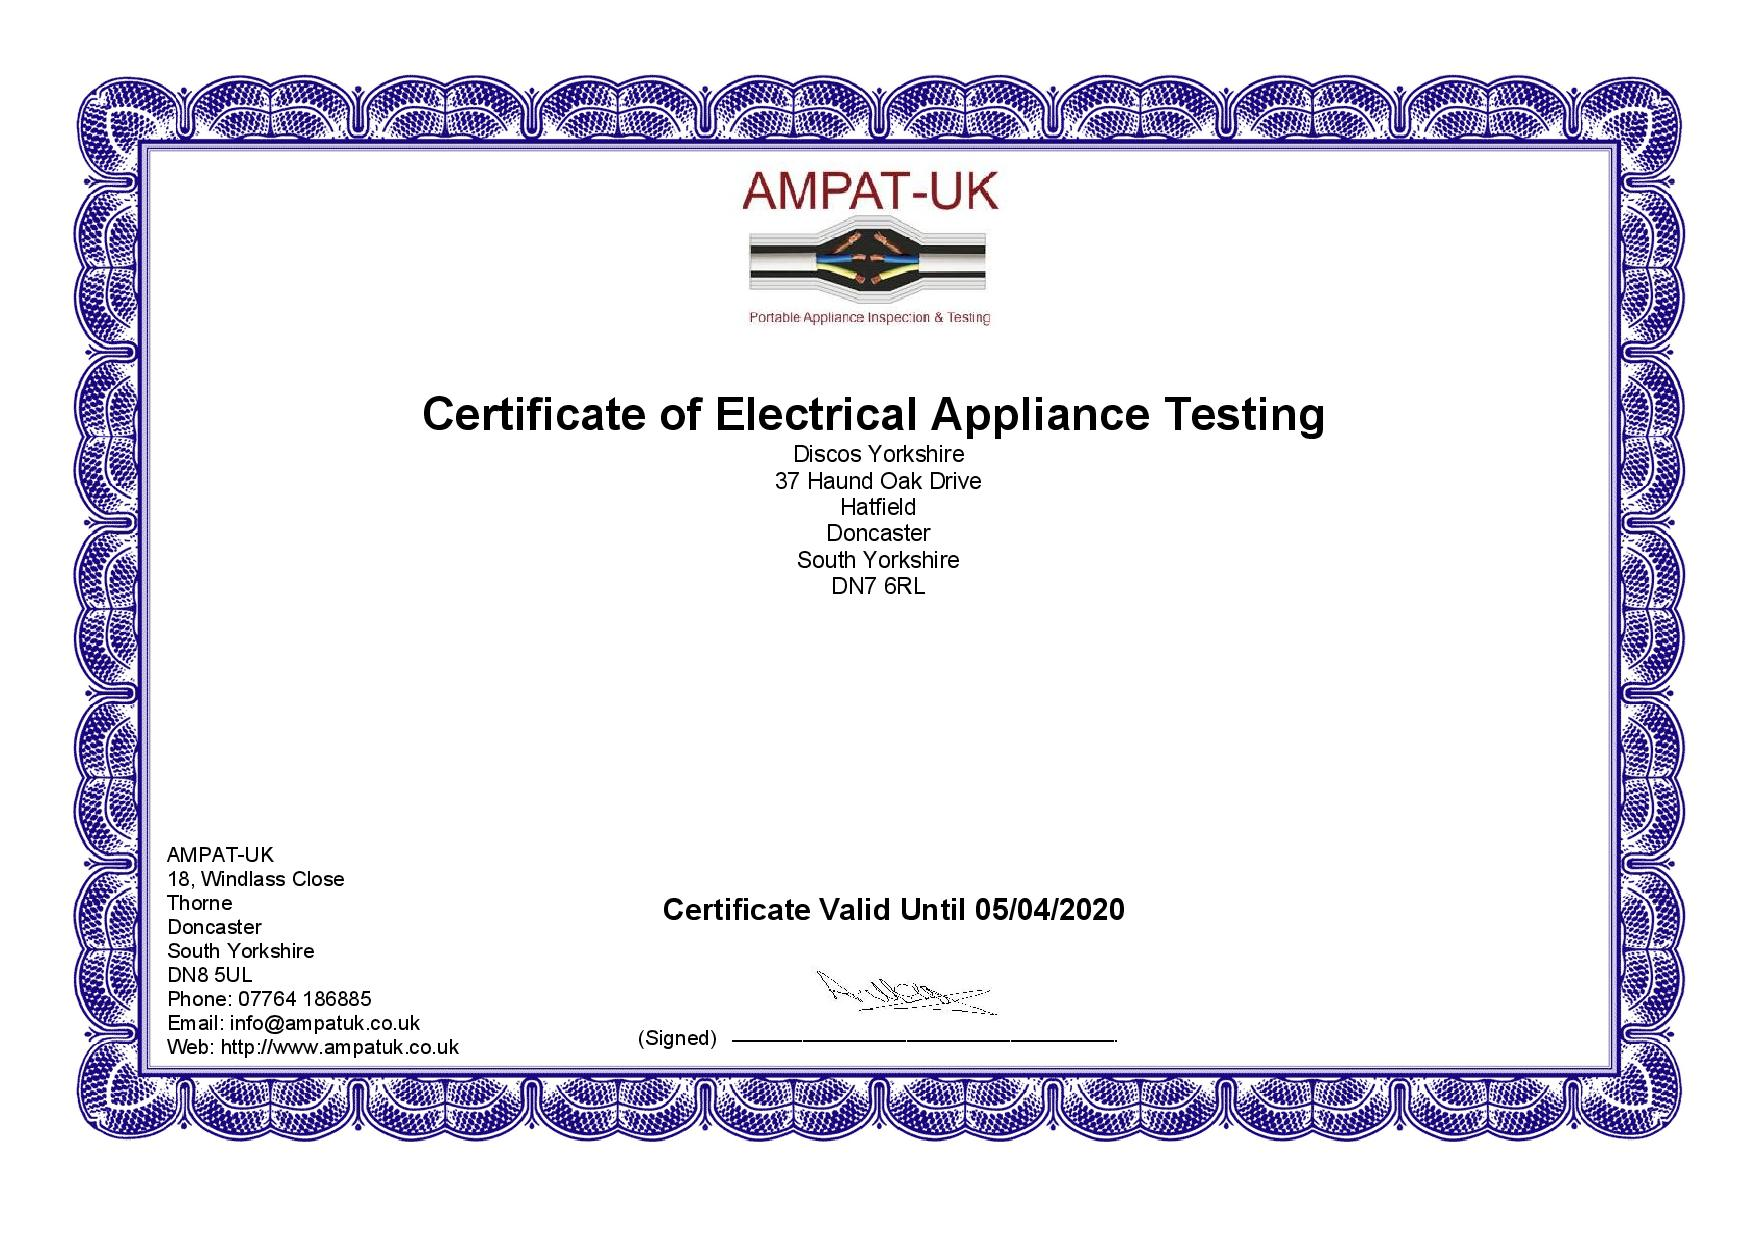 Discos Yorkshire Pat Testing Report-page-003.jpg